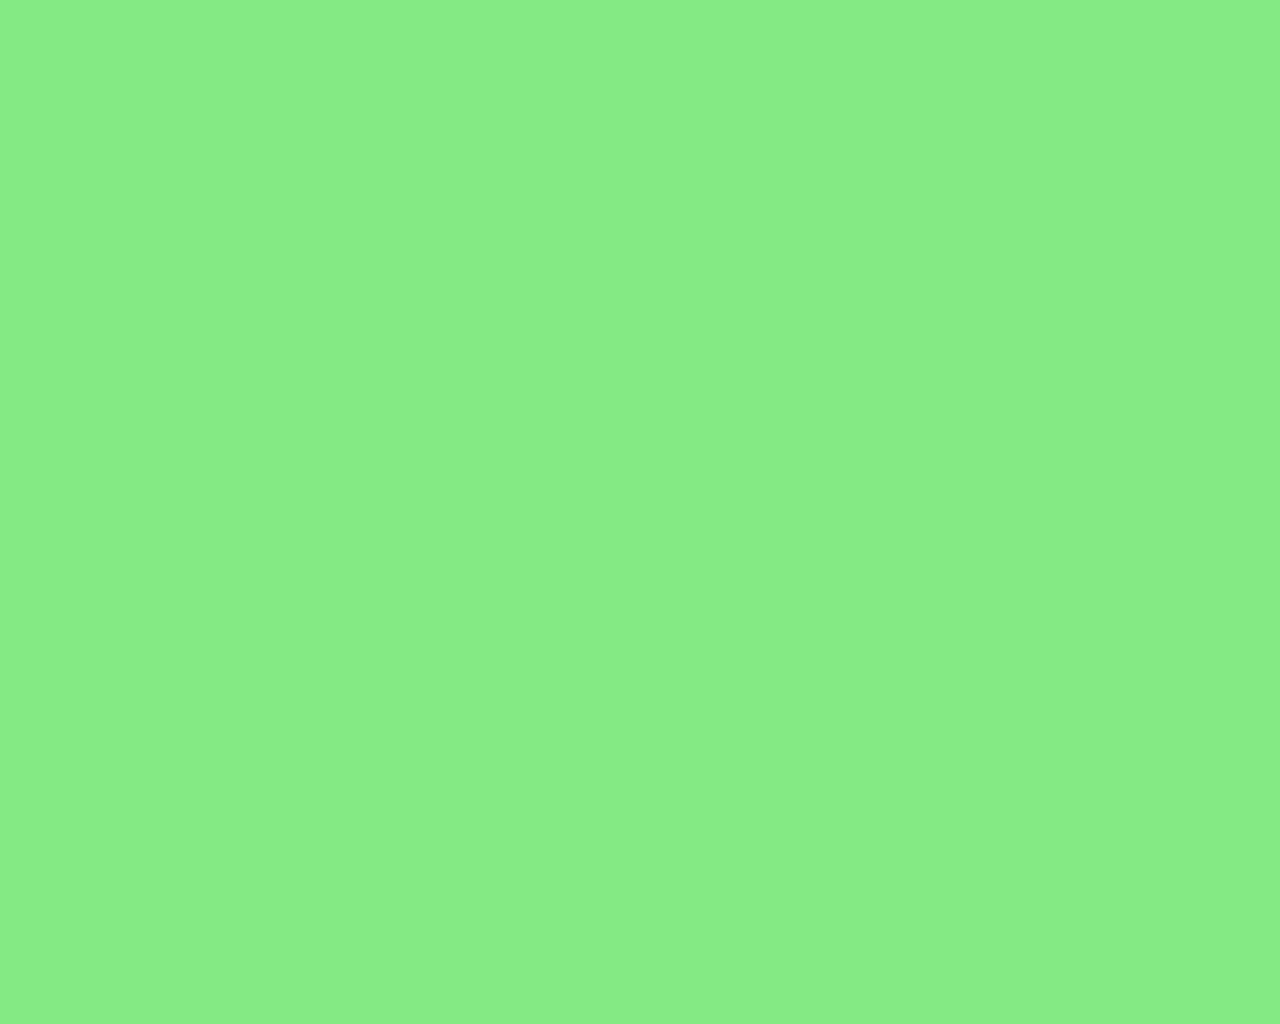 Plain Mint Green Background - Viewing Gallery | wallpapers ...